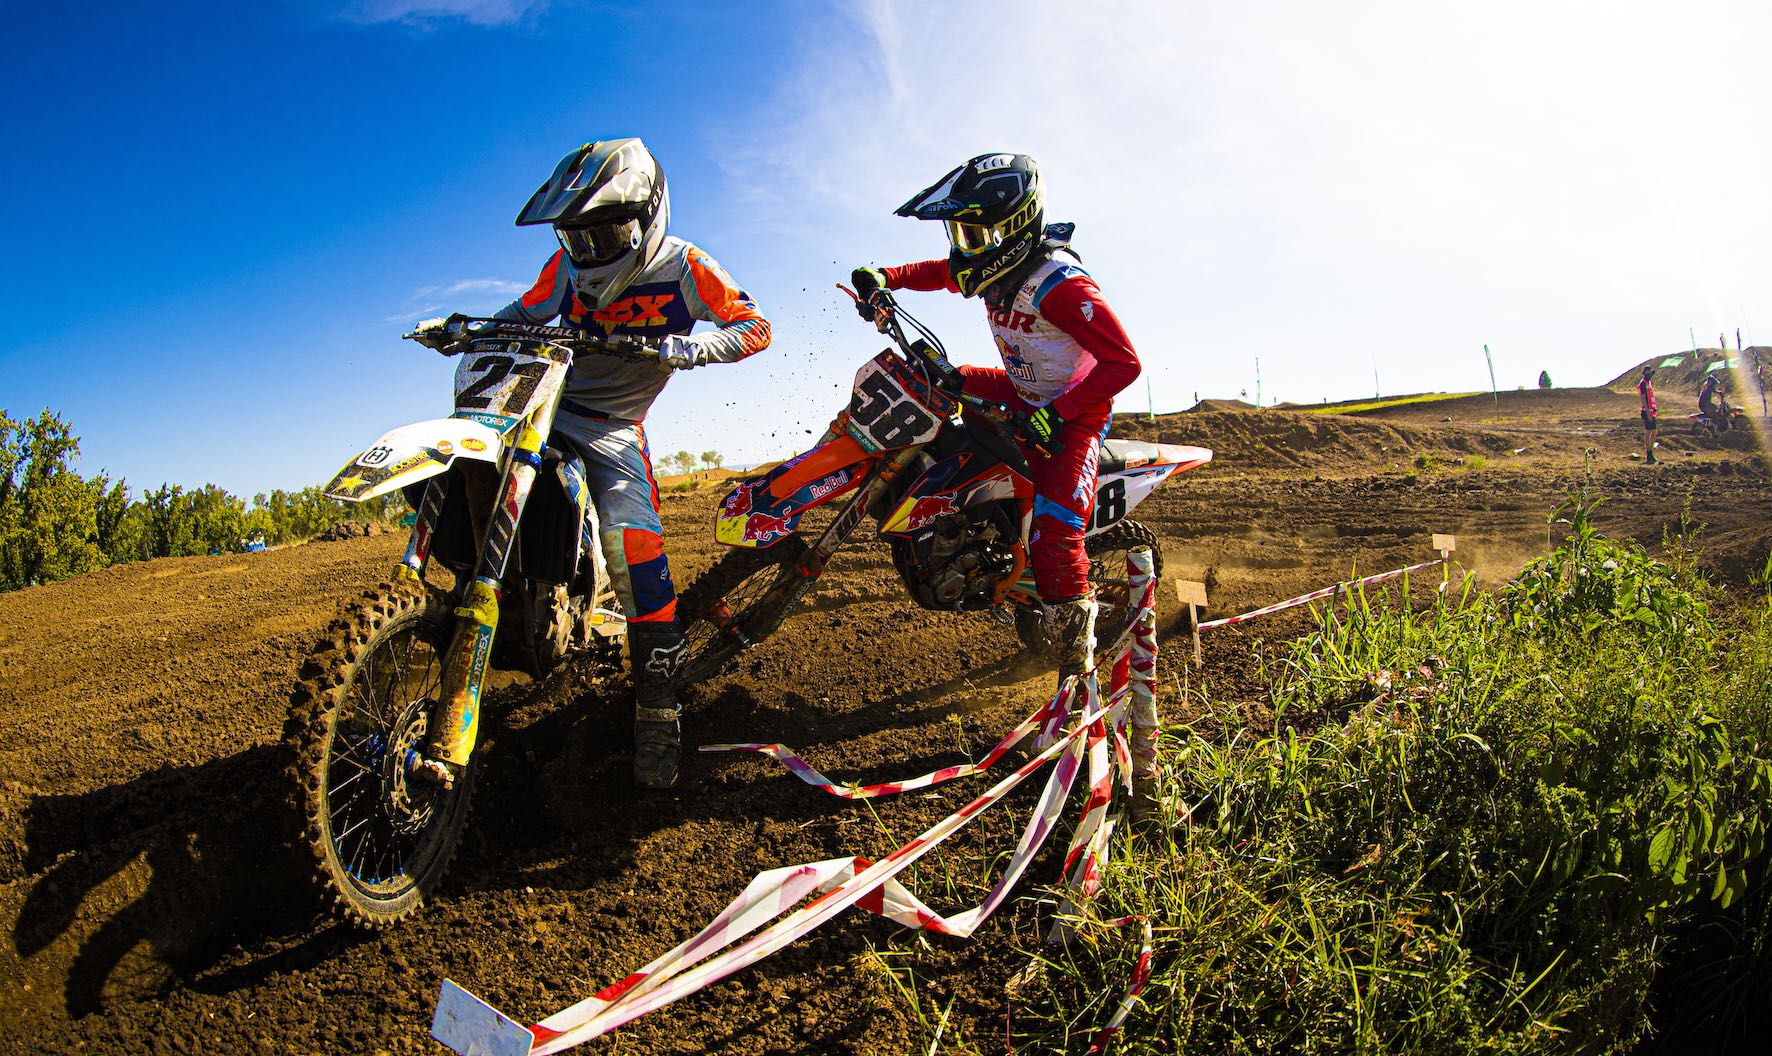 David Goosen and Come-on Durow battling at the motocross nationals